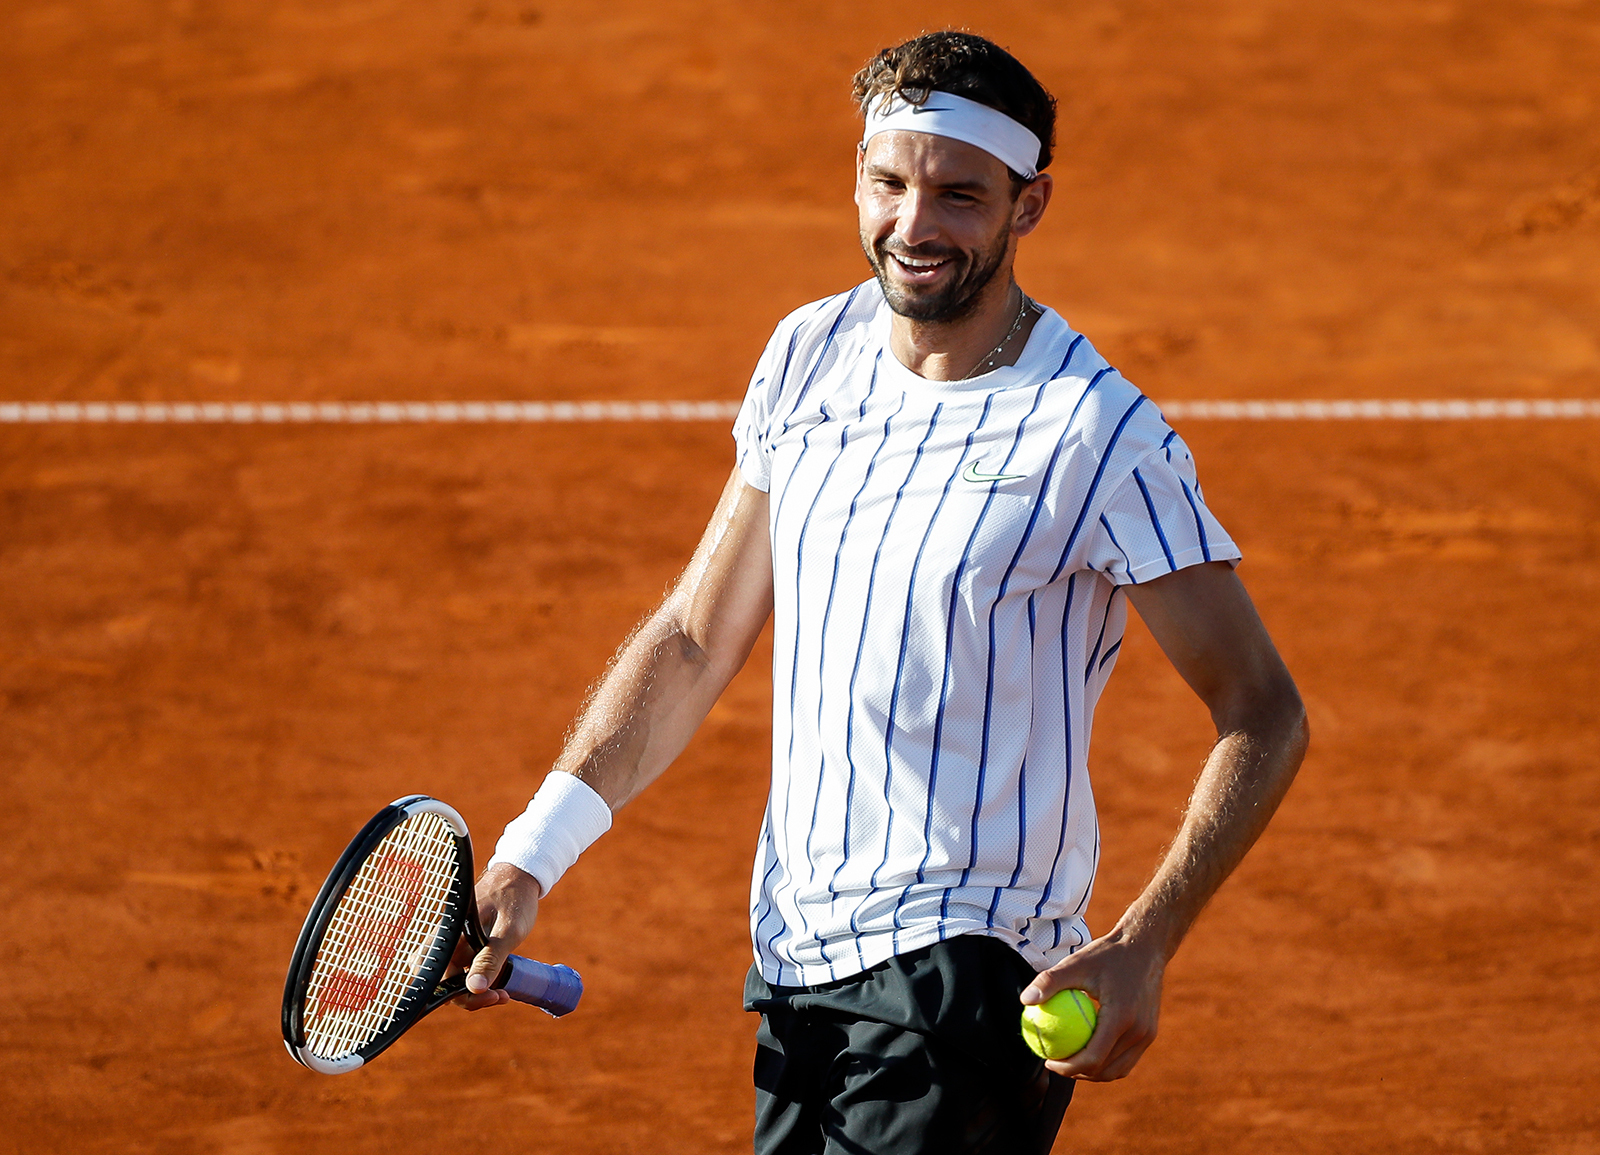 Grigor Dimitrov of Bulgaria reacts during his match at the Adria Tour charity exhibition hosted by Novak Djokovic on June 14, in Belgrade, Serbia.